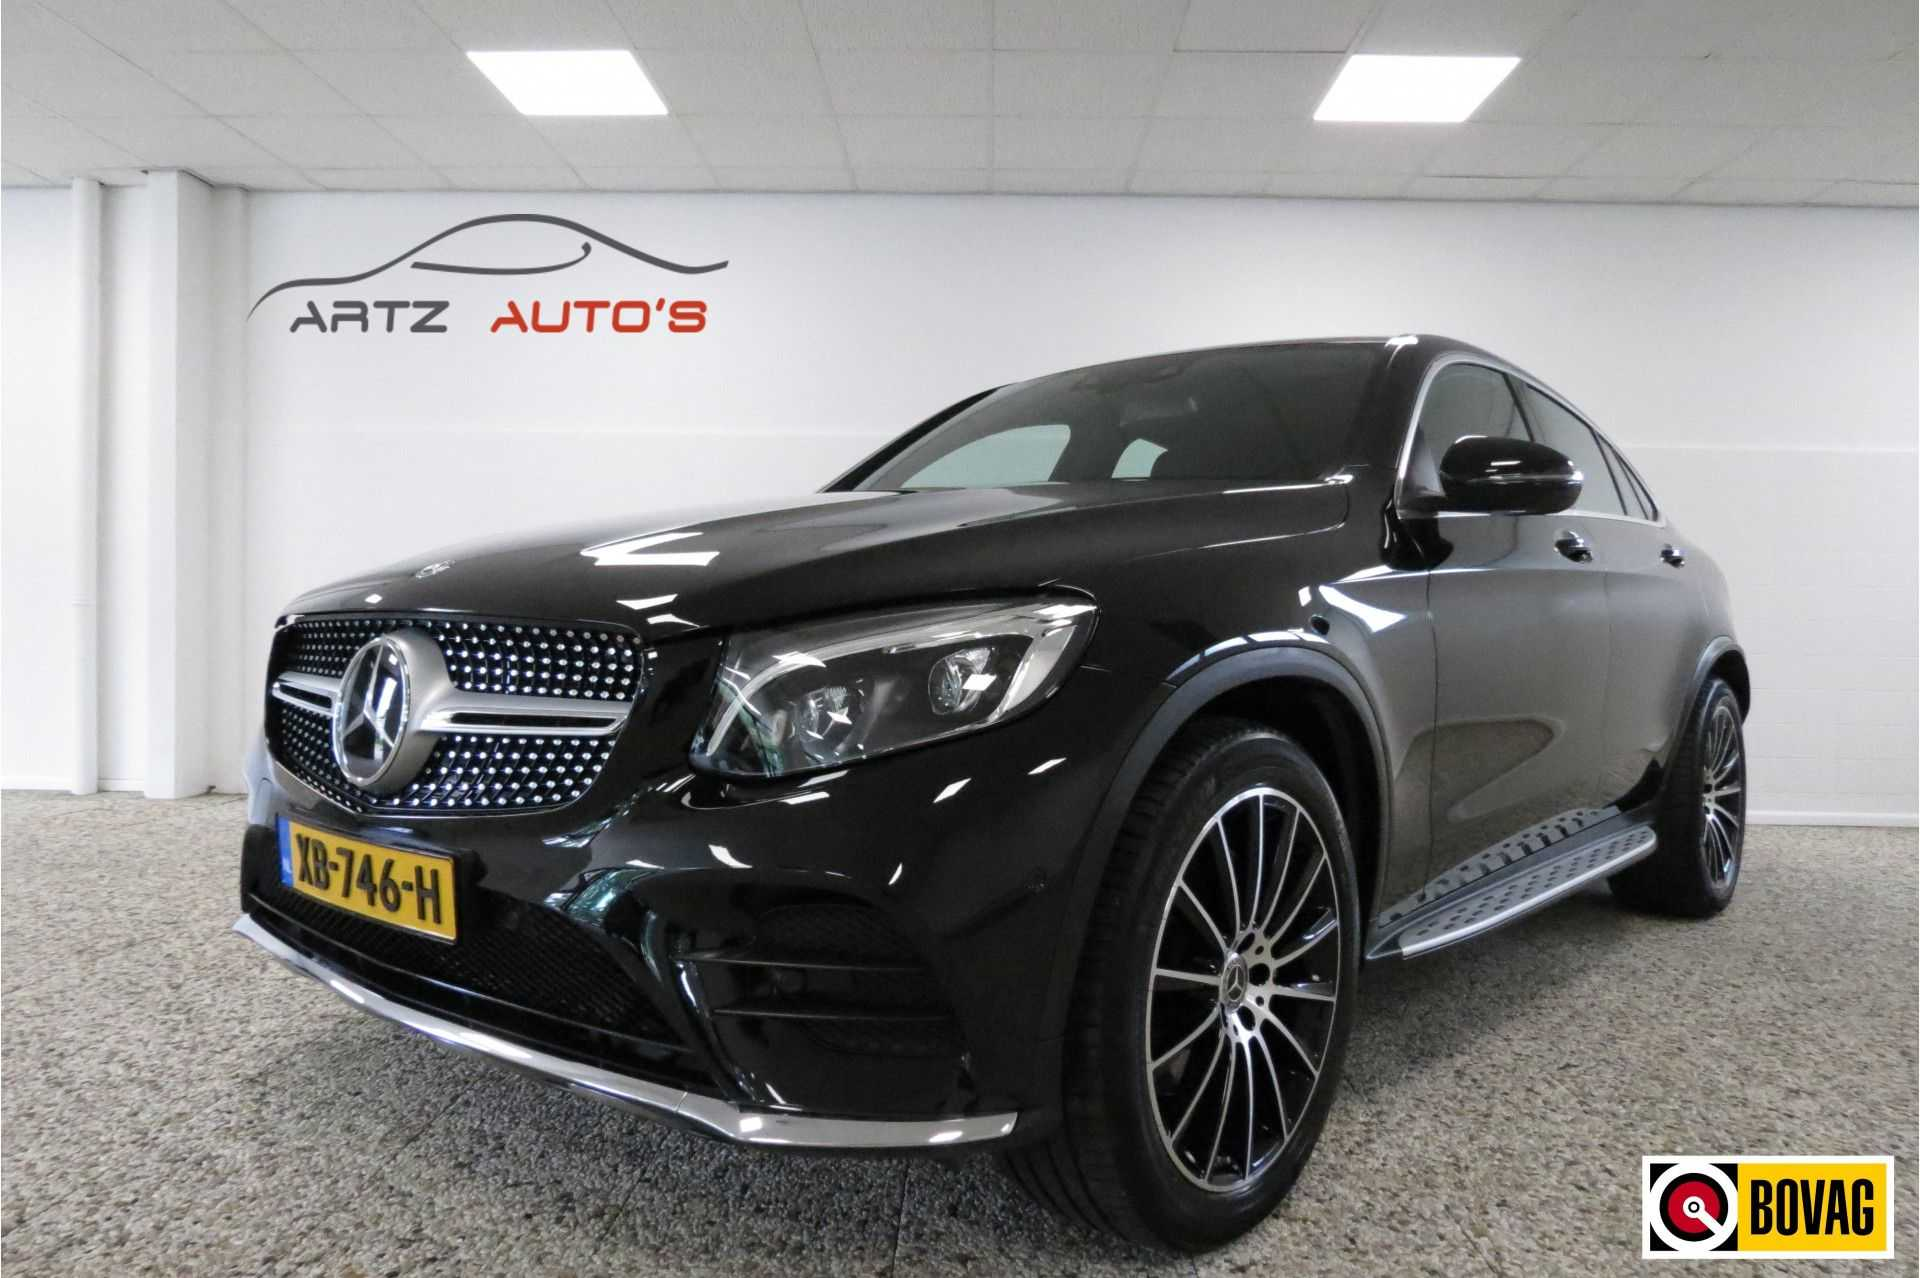 Mercedes-Benz GLC Coupé 250 4MATIC | COMMAND | ILS LED | STANDVER | AMG | S/K-DAK | 20'' LMV